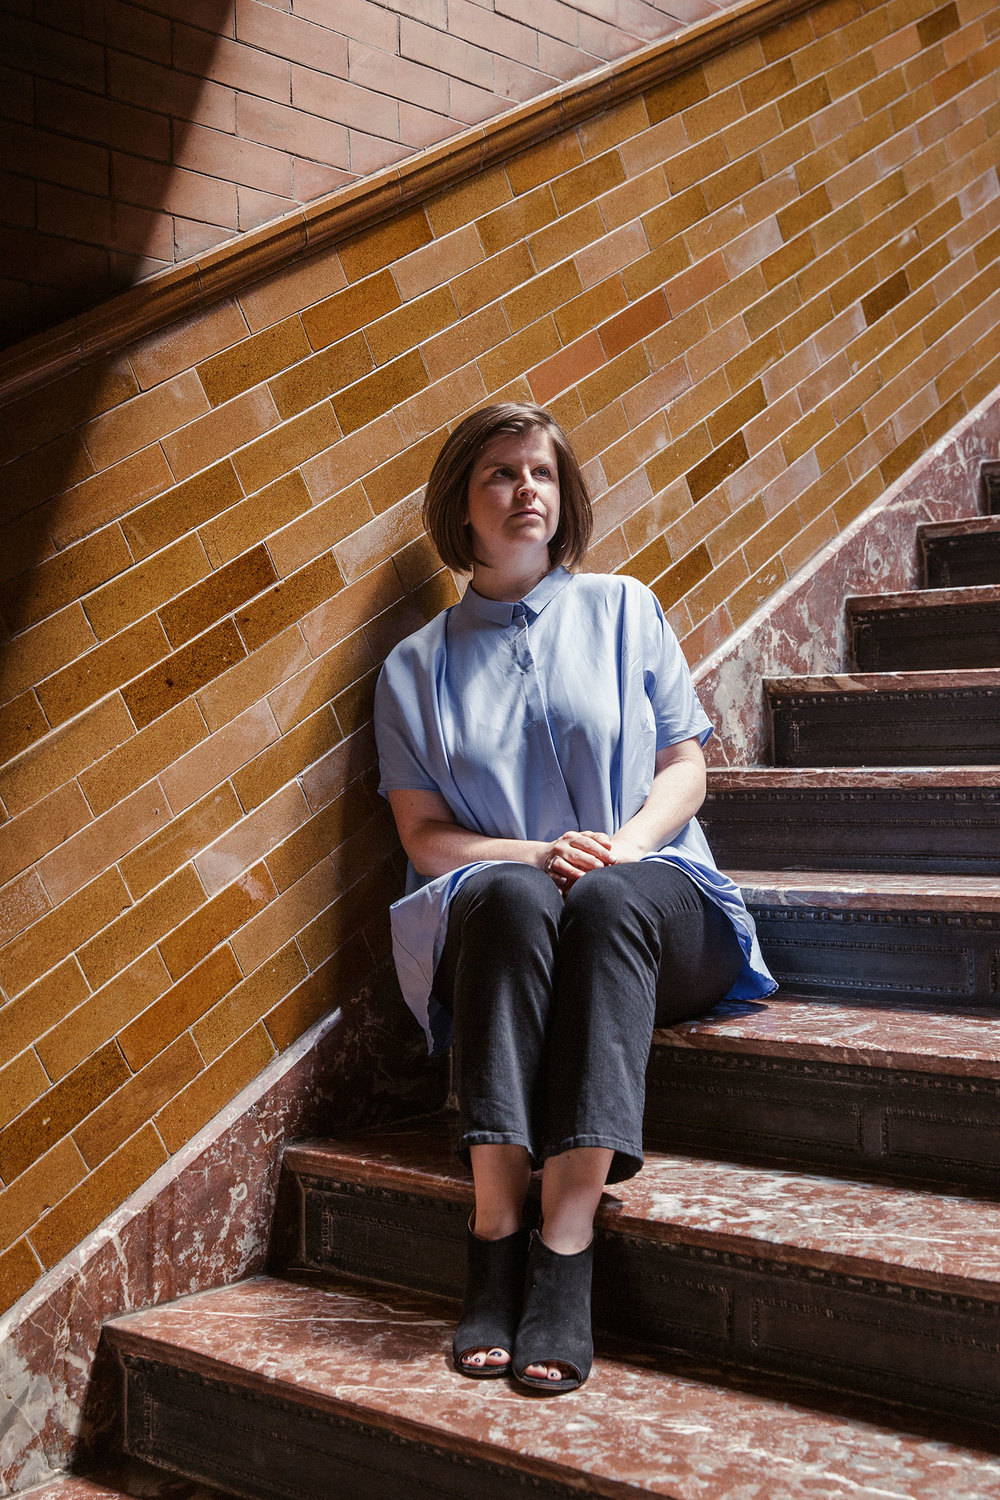 Laura Fried at the Bradbury Building in Los Angeles. (Photo: Mathew Scott/Surface)